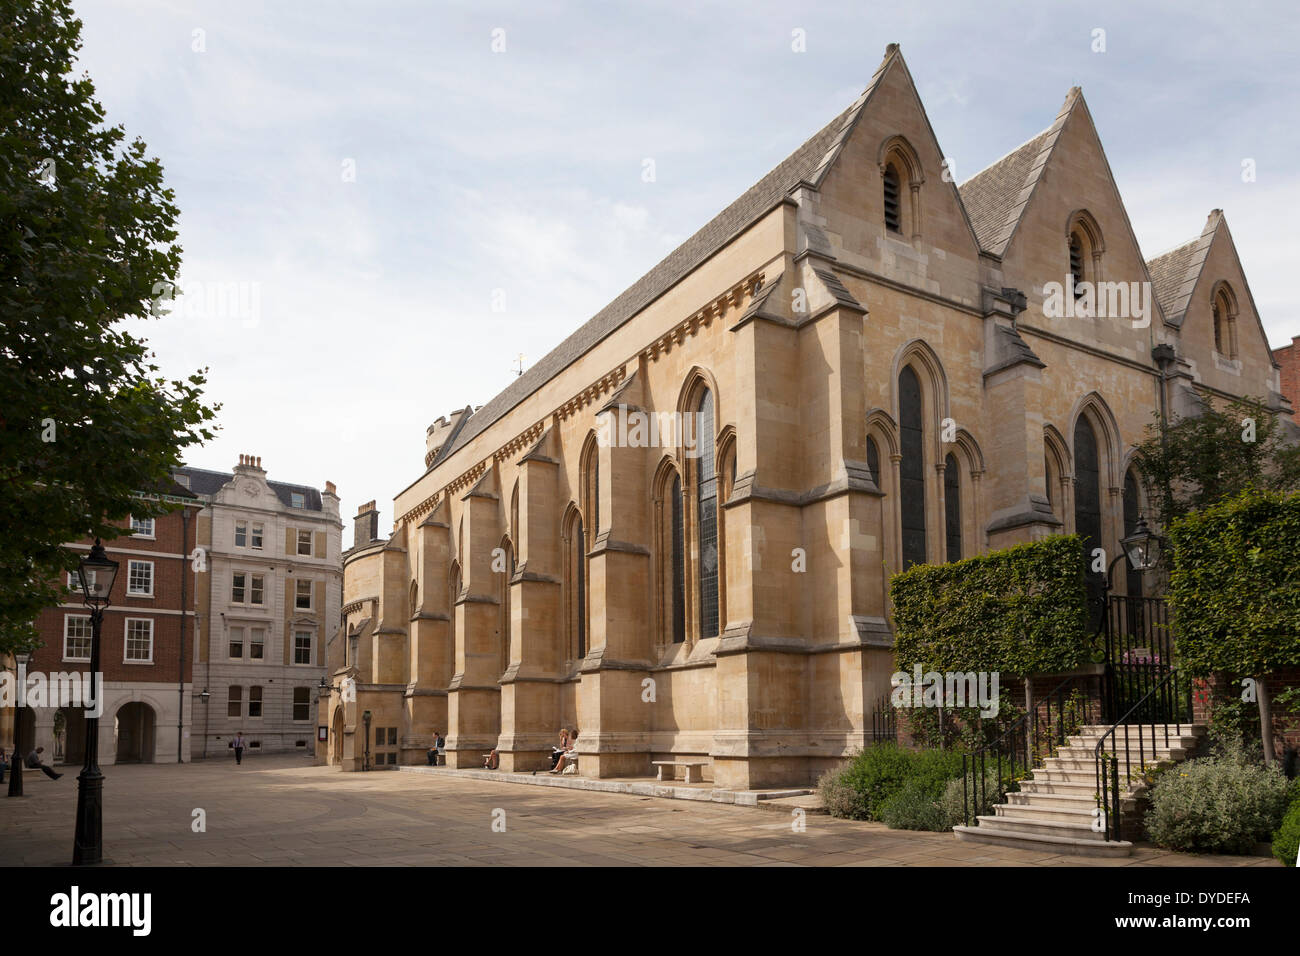 Exterior of Temple Church in London. - Stock Image